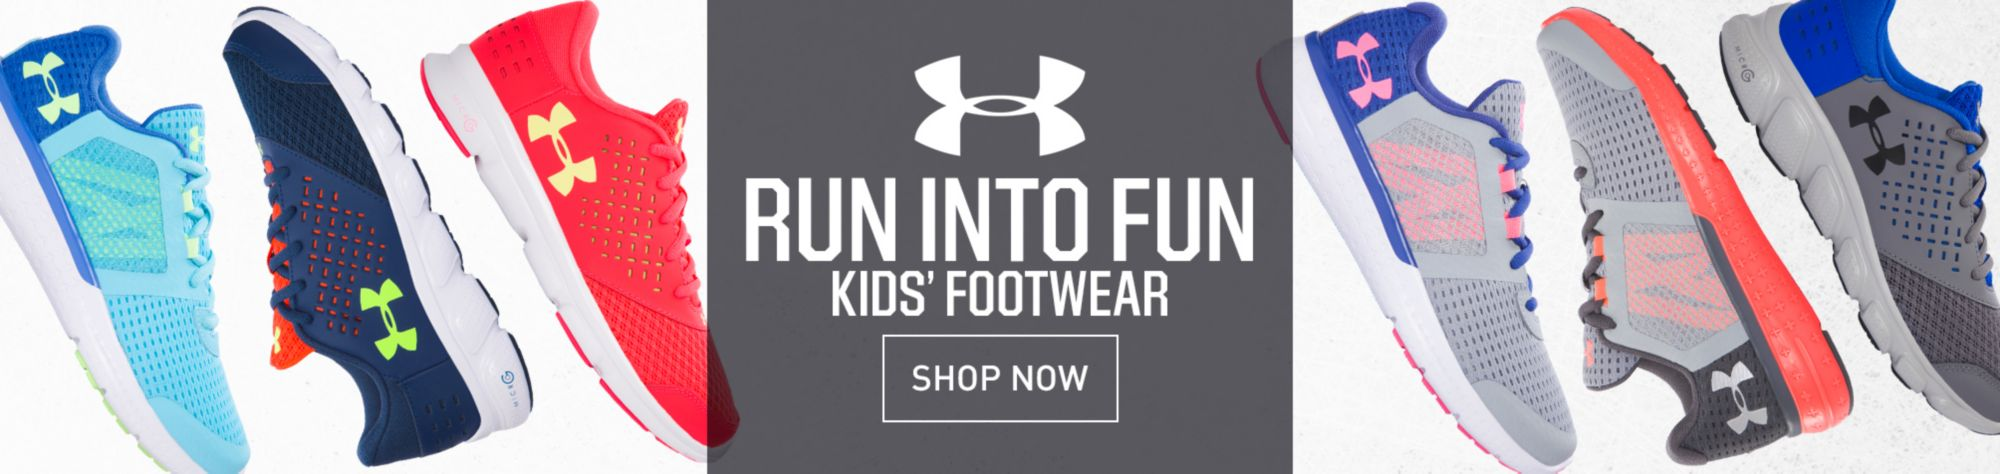 Shop Under Armour Youth Footwear